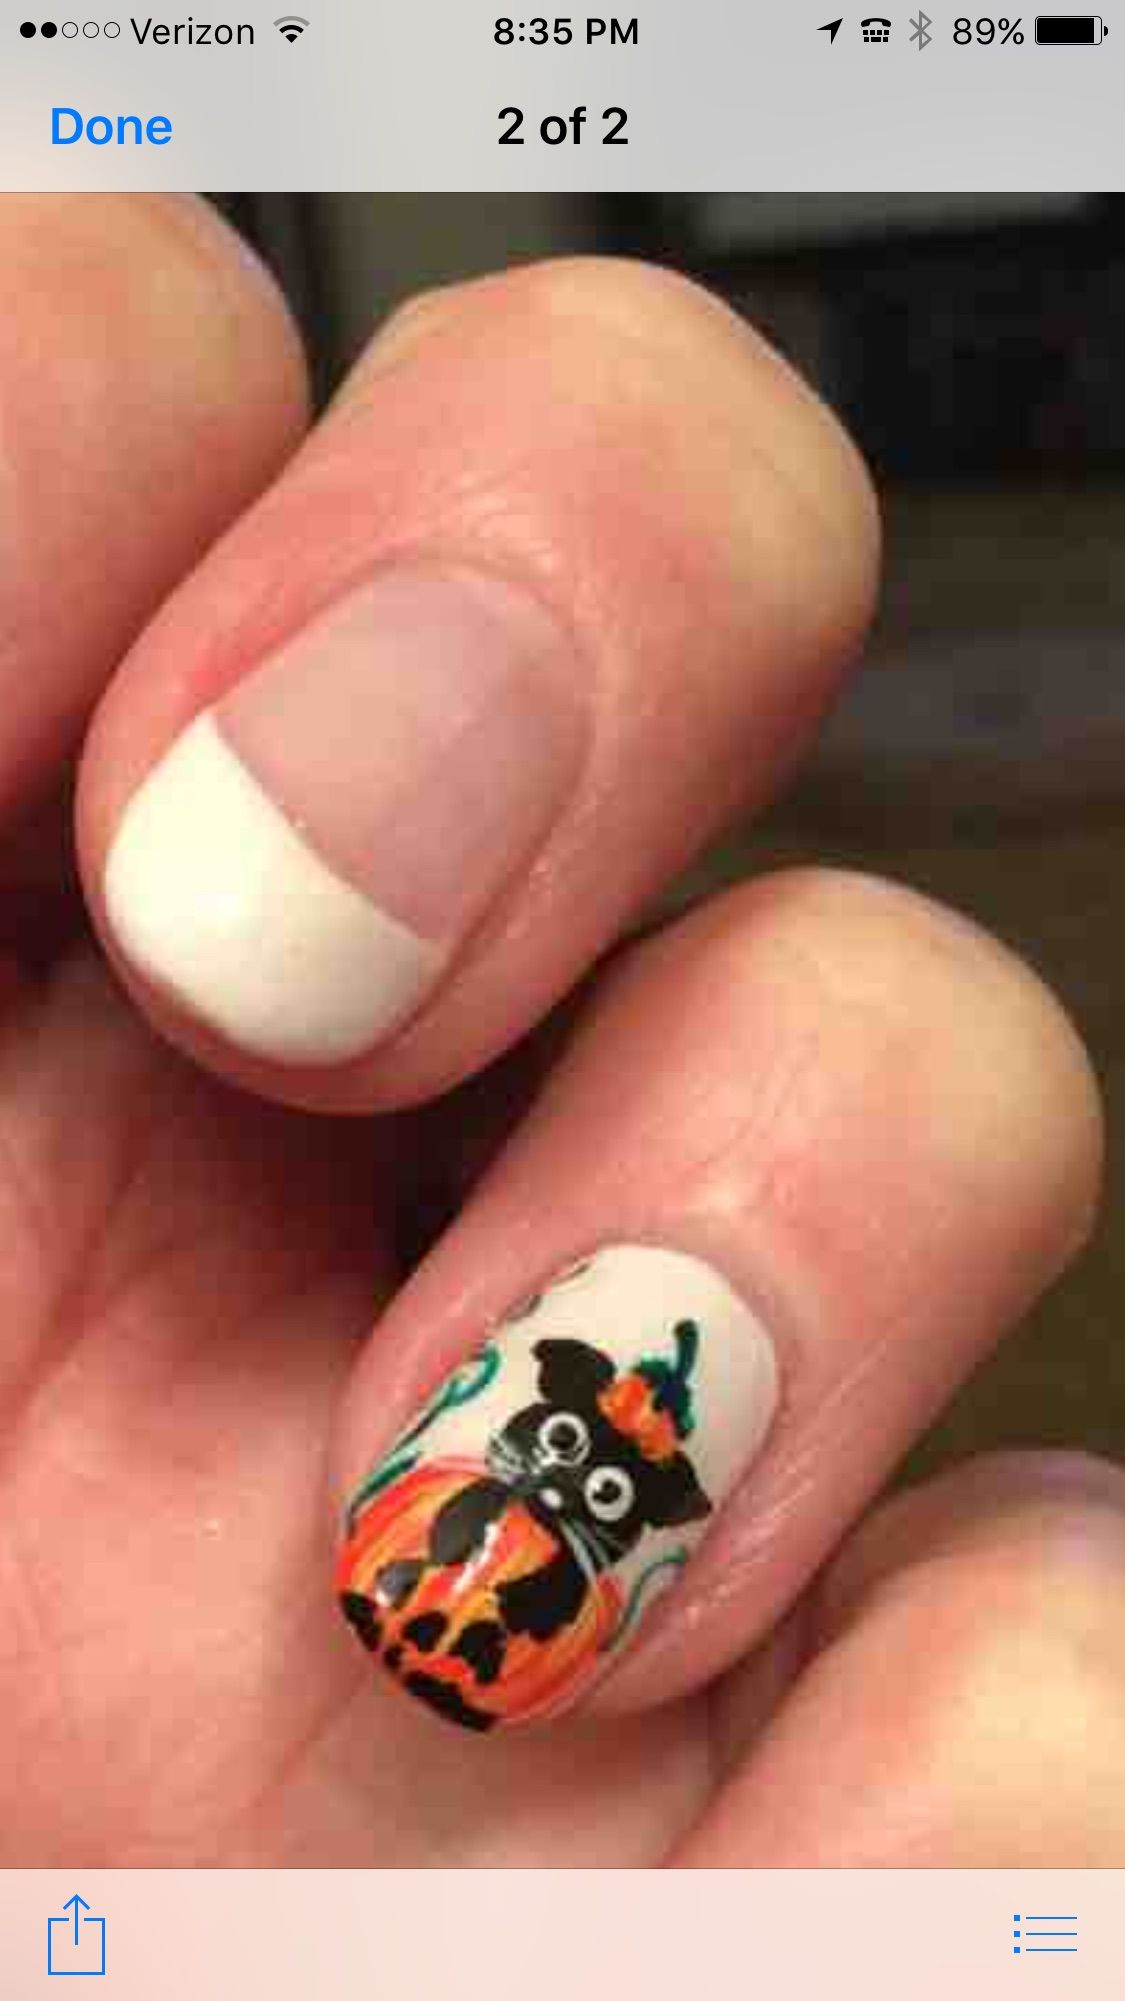 Pin By Ruth Ankeny On Gel Nail Art By Ruth Pinterest Gel Nail Art